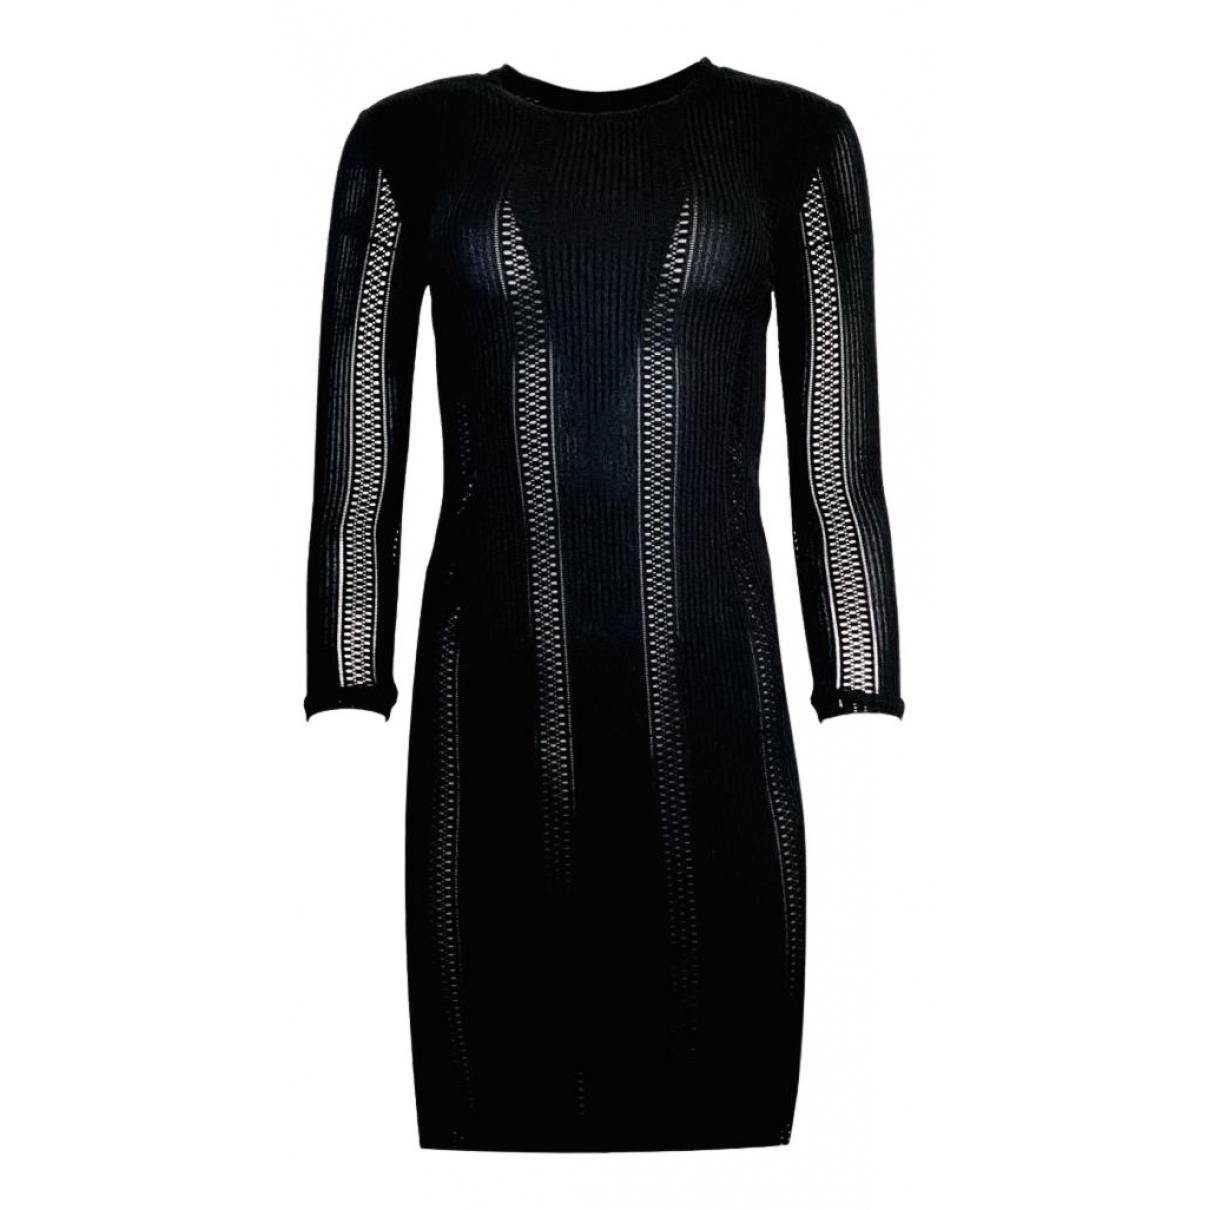 Rag & Bone \N Kleid in  Schwarz Synthetik